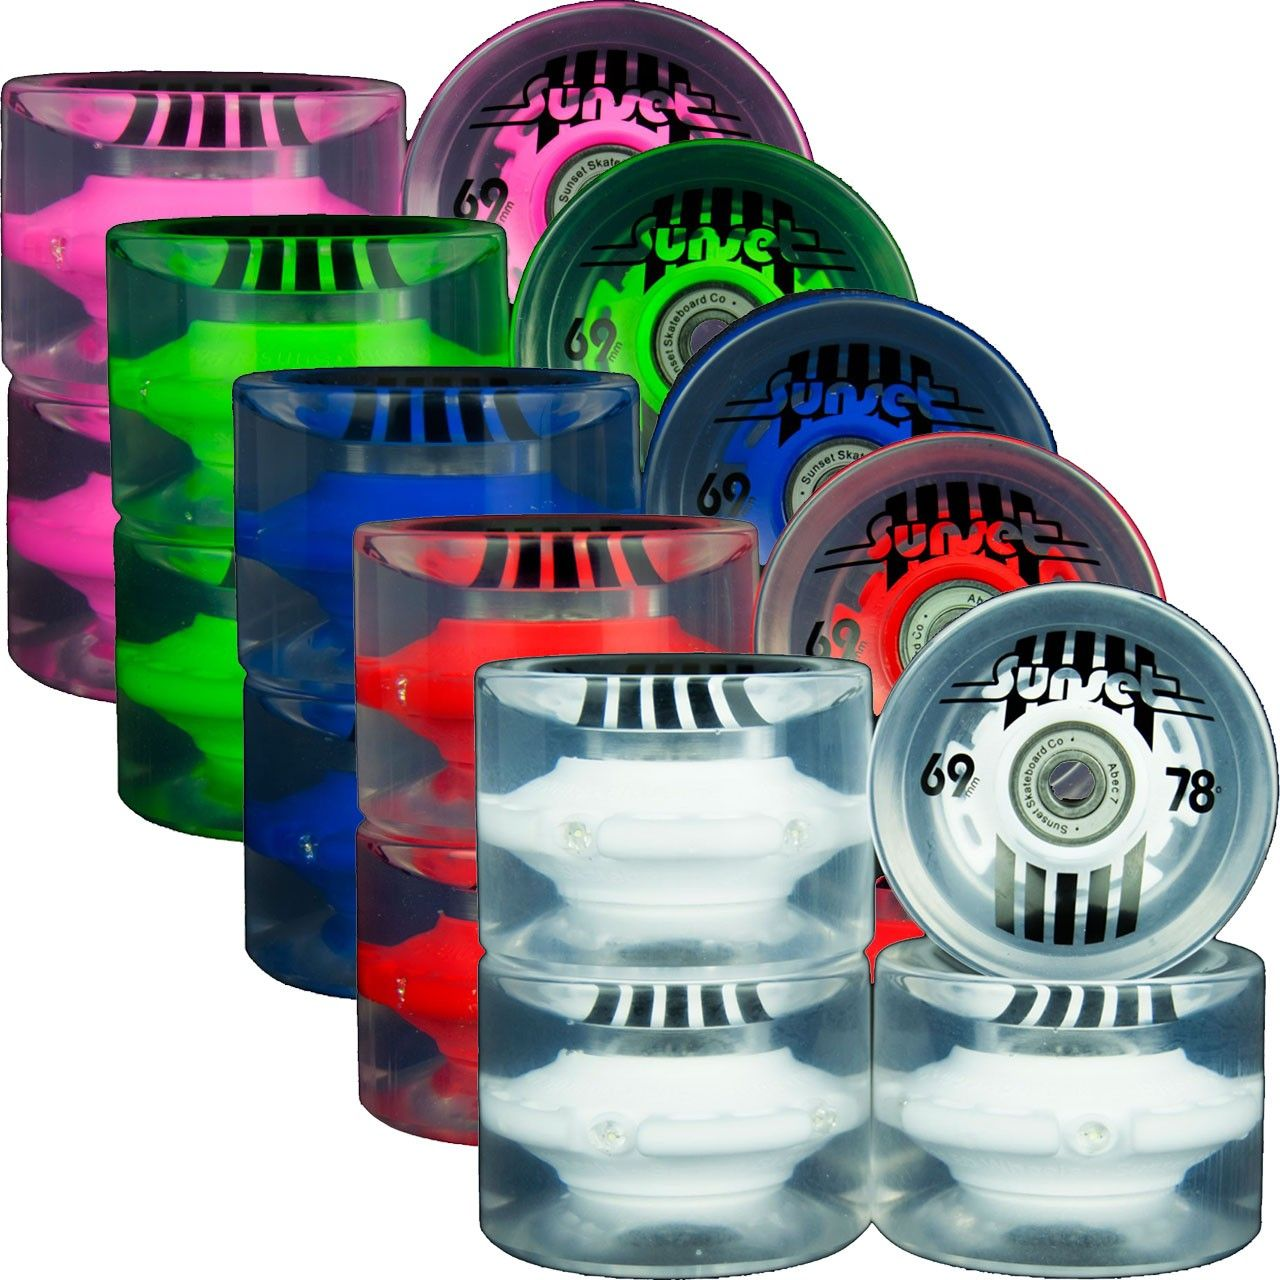 Sunset LED 69mm Wheels. Durometer: 78a | Diameter: 69 mm | Width: 50 mm | Offset | Abec 7 Bearings included | Set of 4 wheels